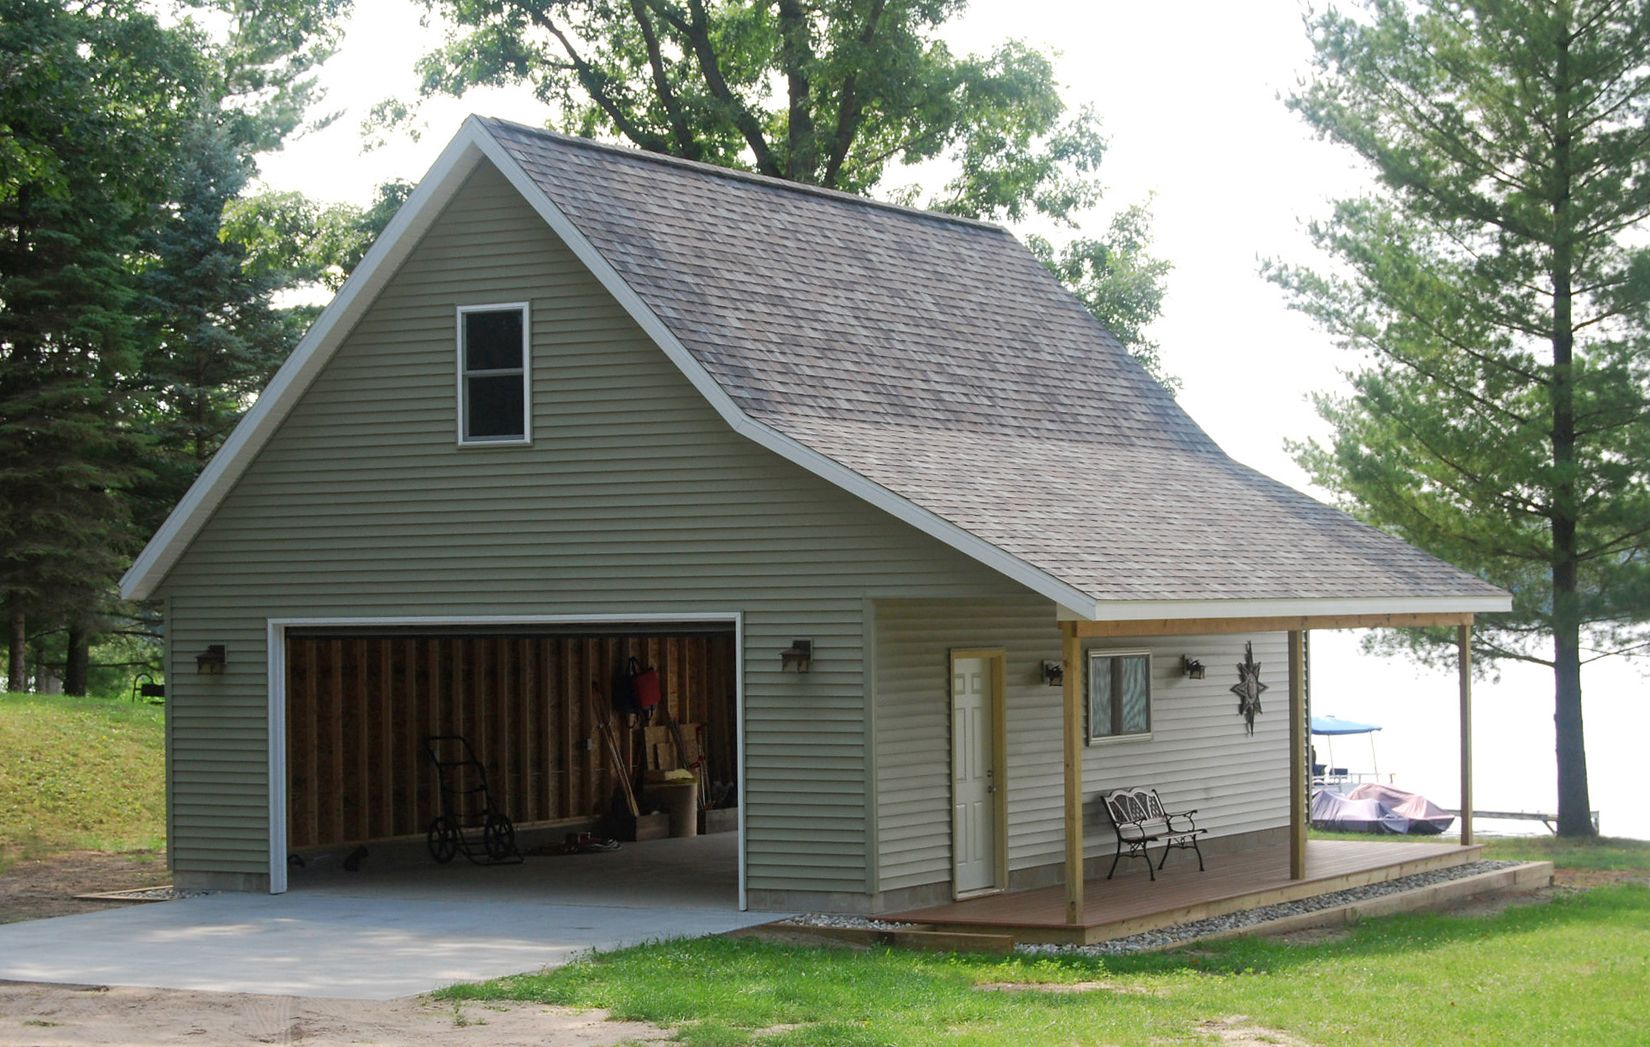 Pole barn garage plans welcome to jb custom homes where for Pole building with apartment plans